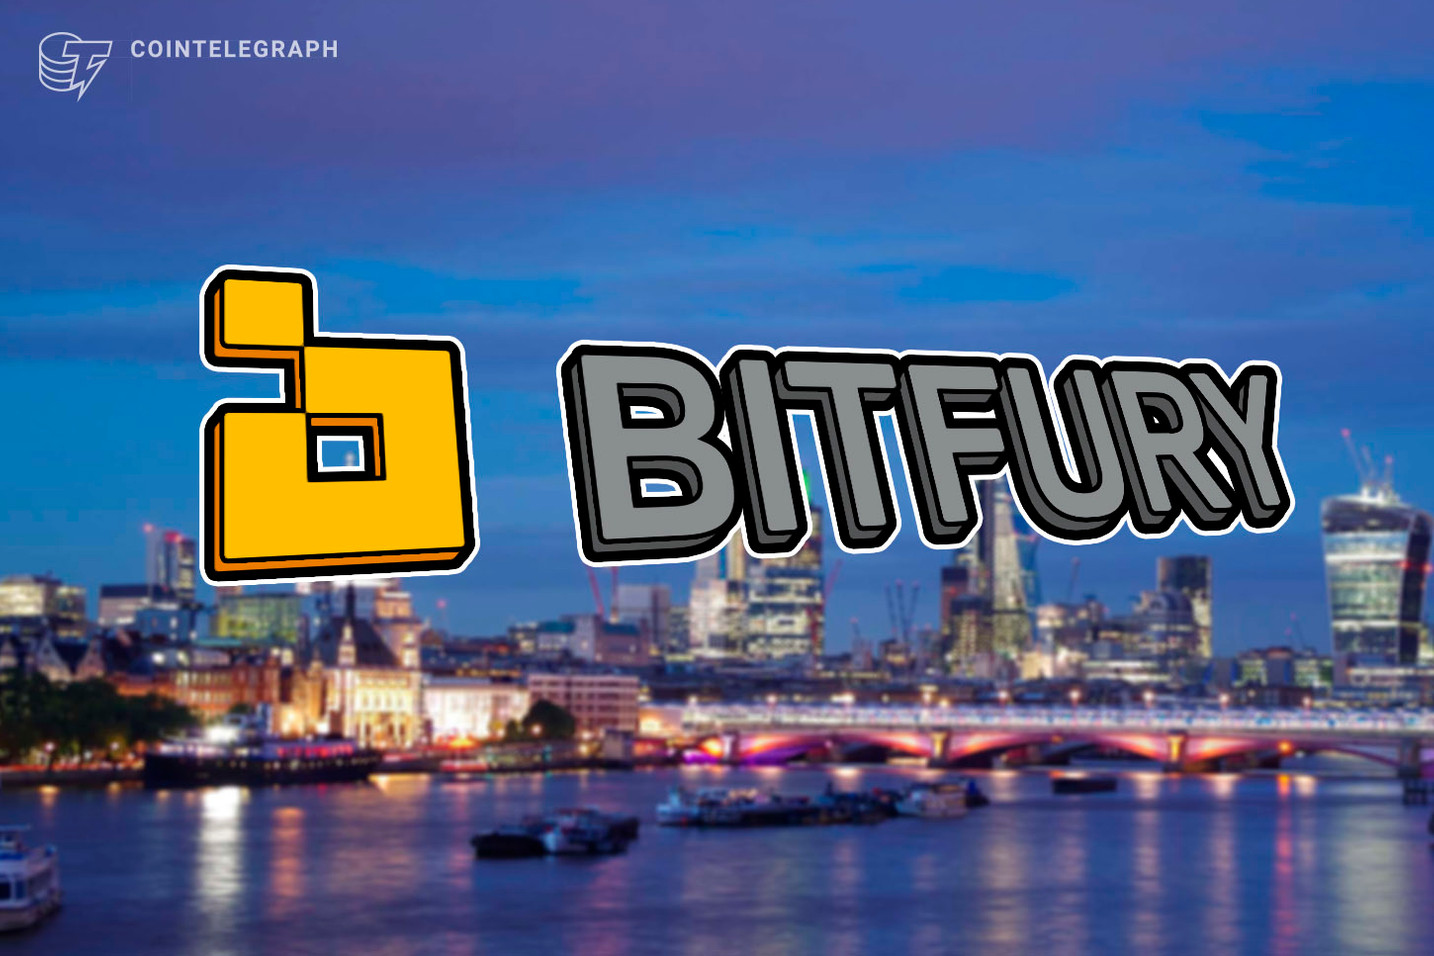 Bitfury Announces Financial Services Partnership with Final Frontier Final Frontier to Offer Blockchain-Focused Products and Financial Services to Institutional Investors